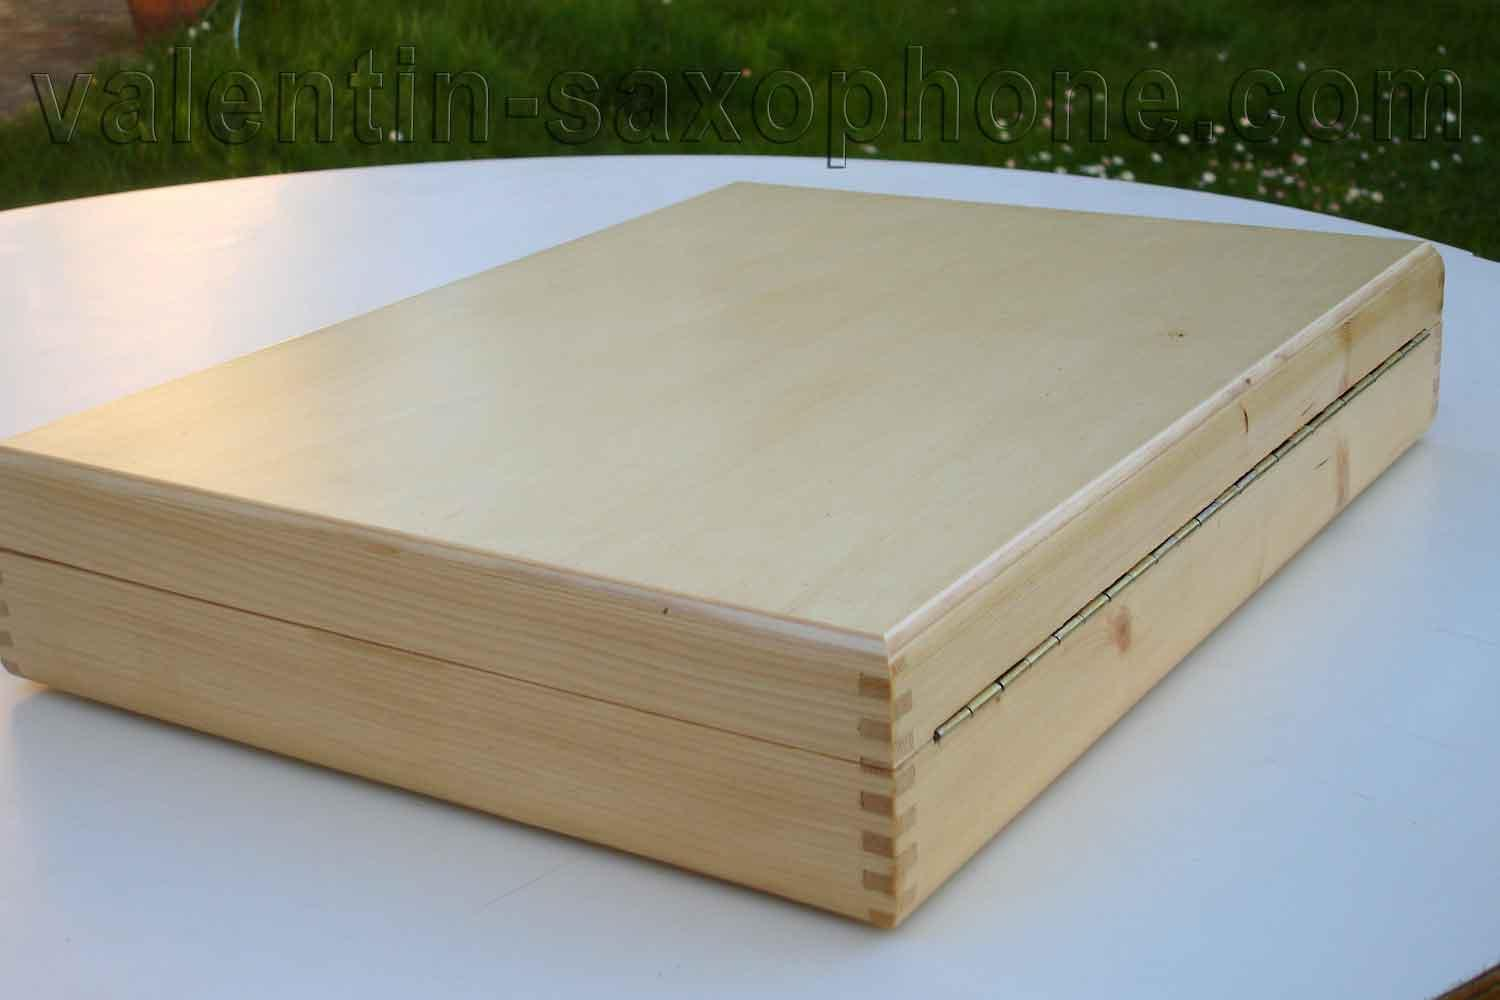 Valentin cases : The box frame is in white pine wood, assembled in finger joint.<br>This traditional method is known for its strength and lightness.